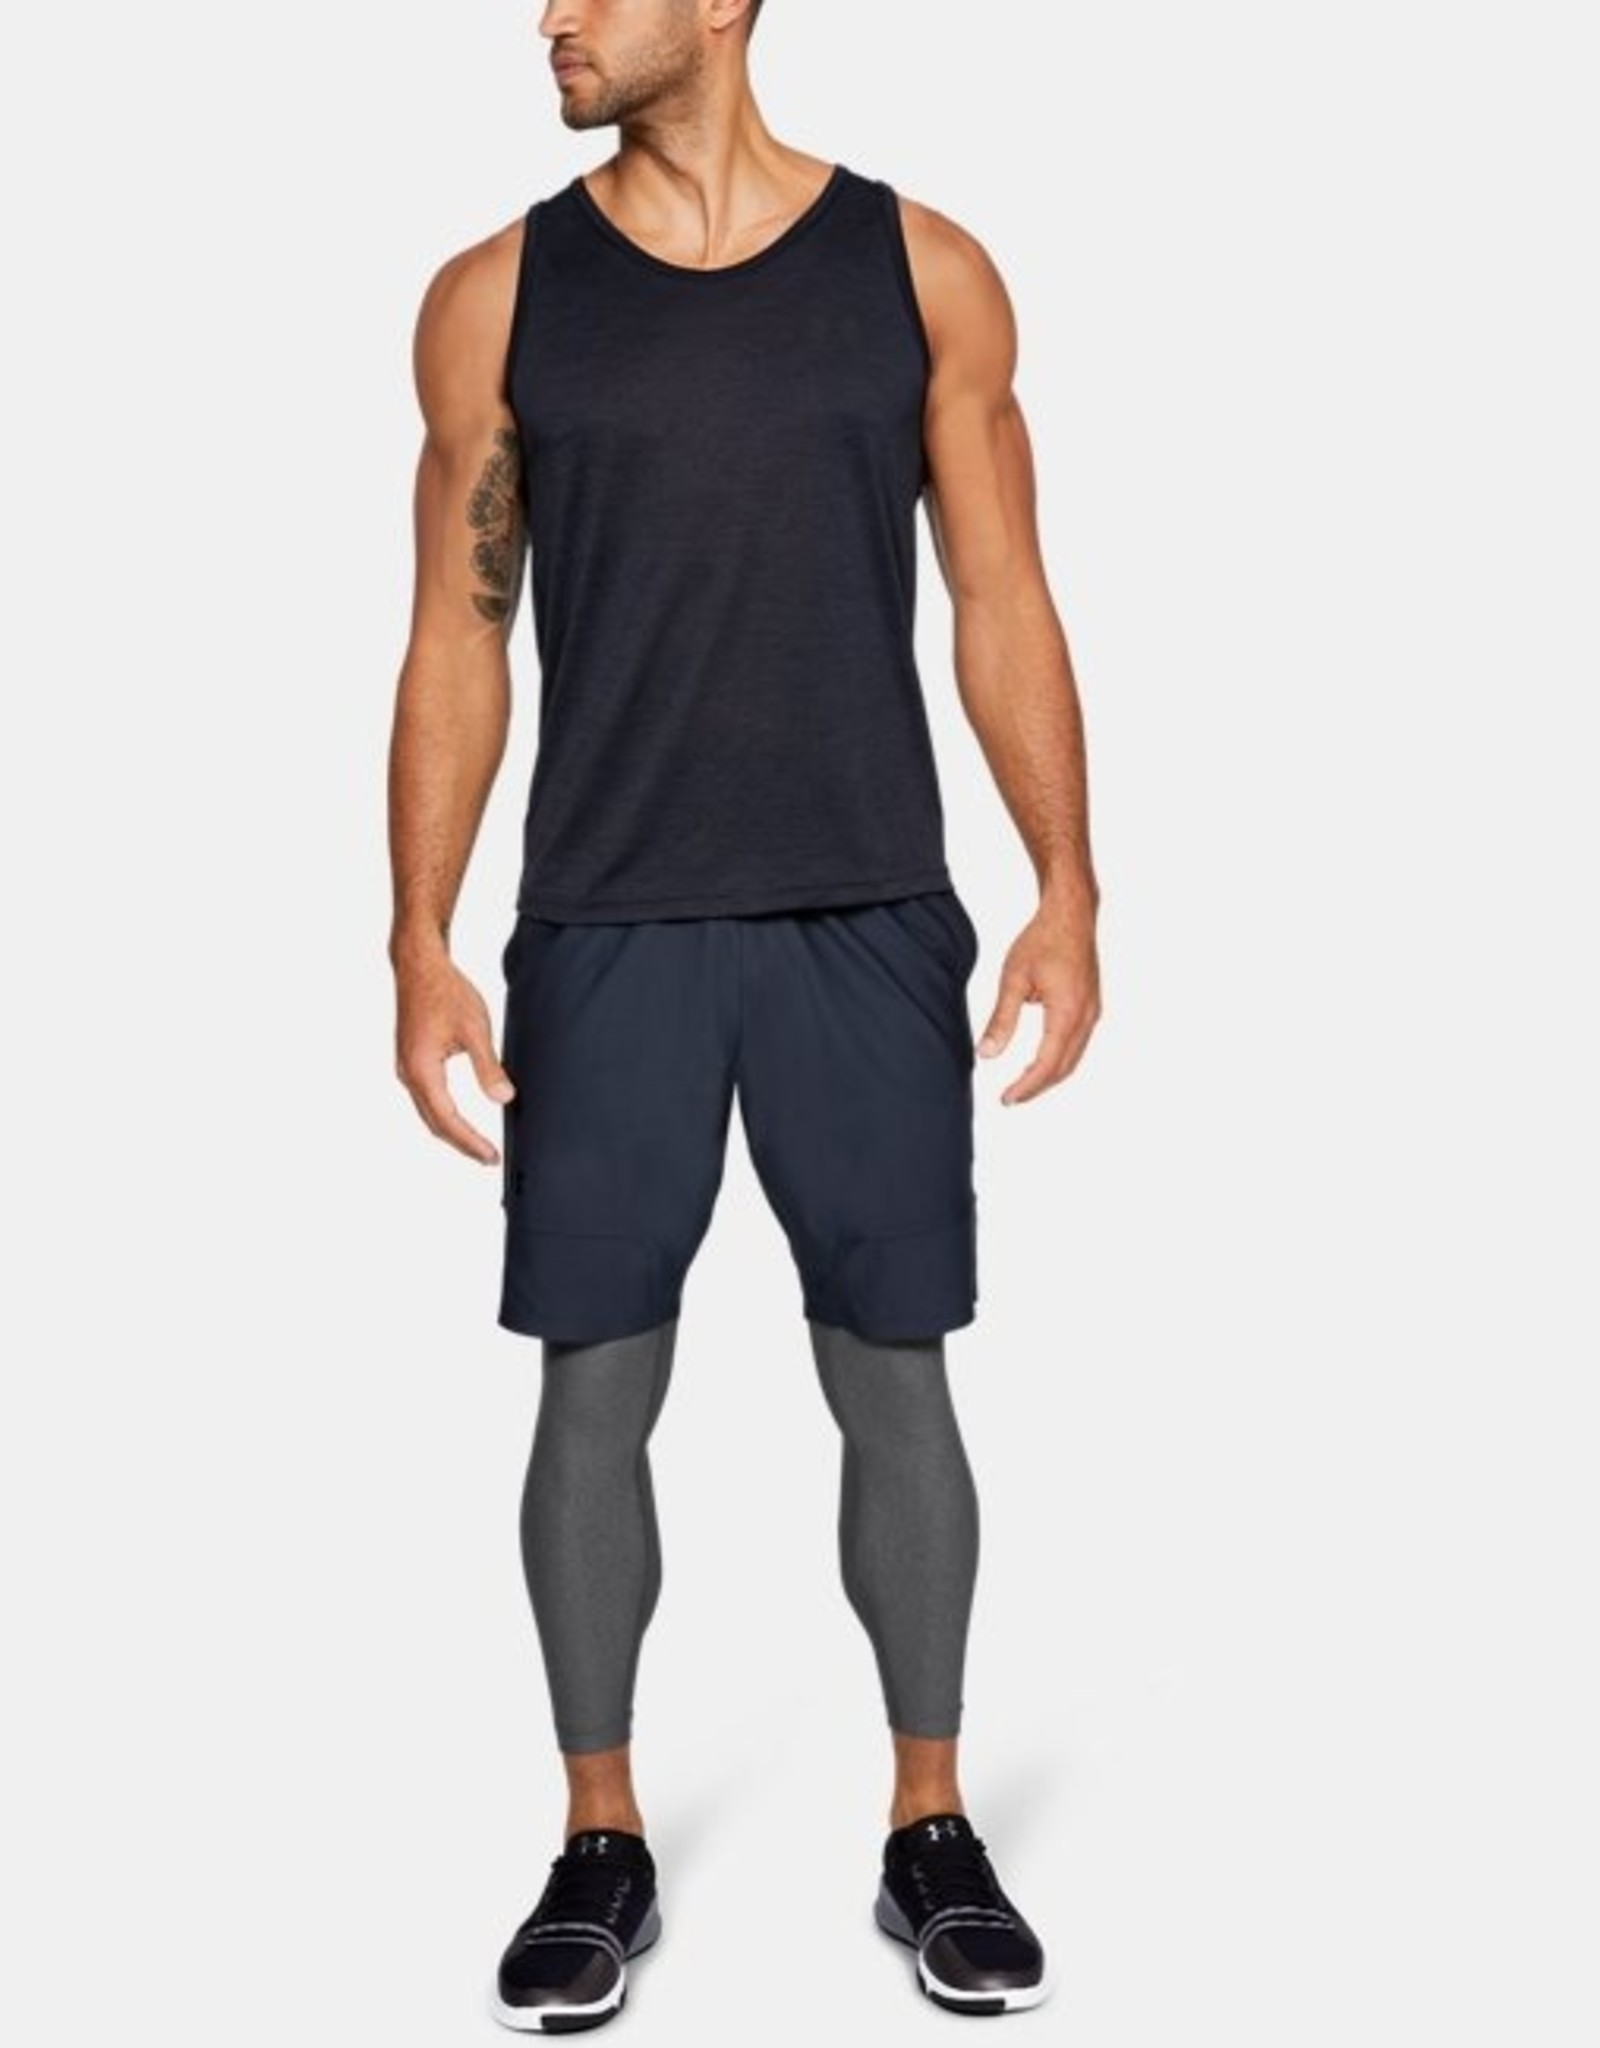 Under Armour HG ARMOUR 2.0 LEGGING - grey